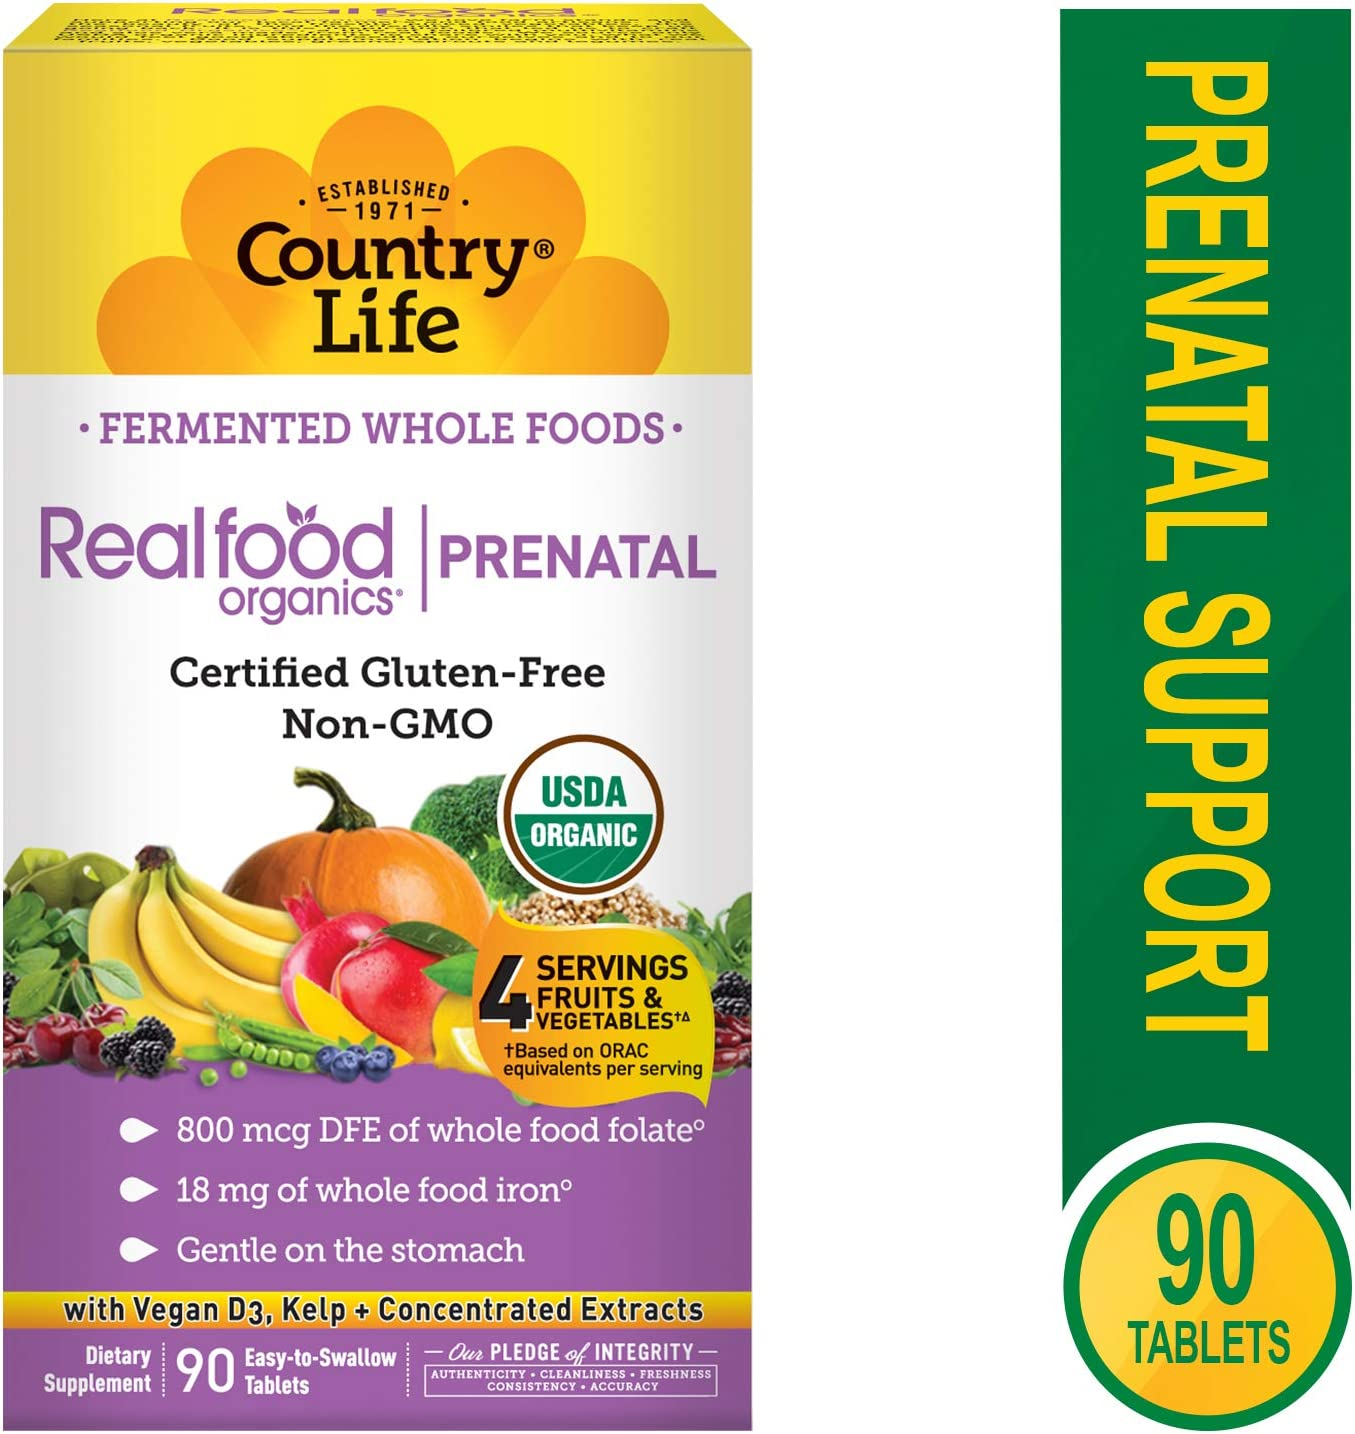 Country Life Vitamins, Prenatal, Organic, Fermented Wholefood, Non-GMO, Gluten Free, 90 Count